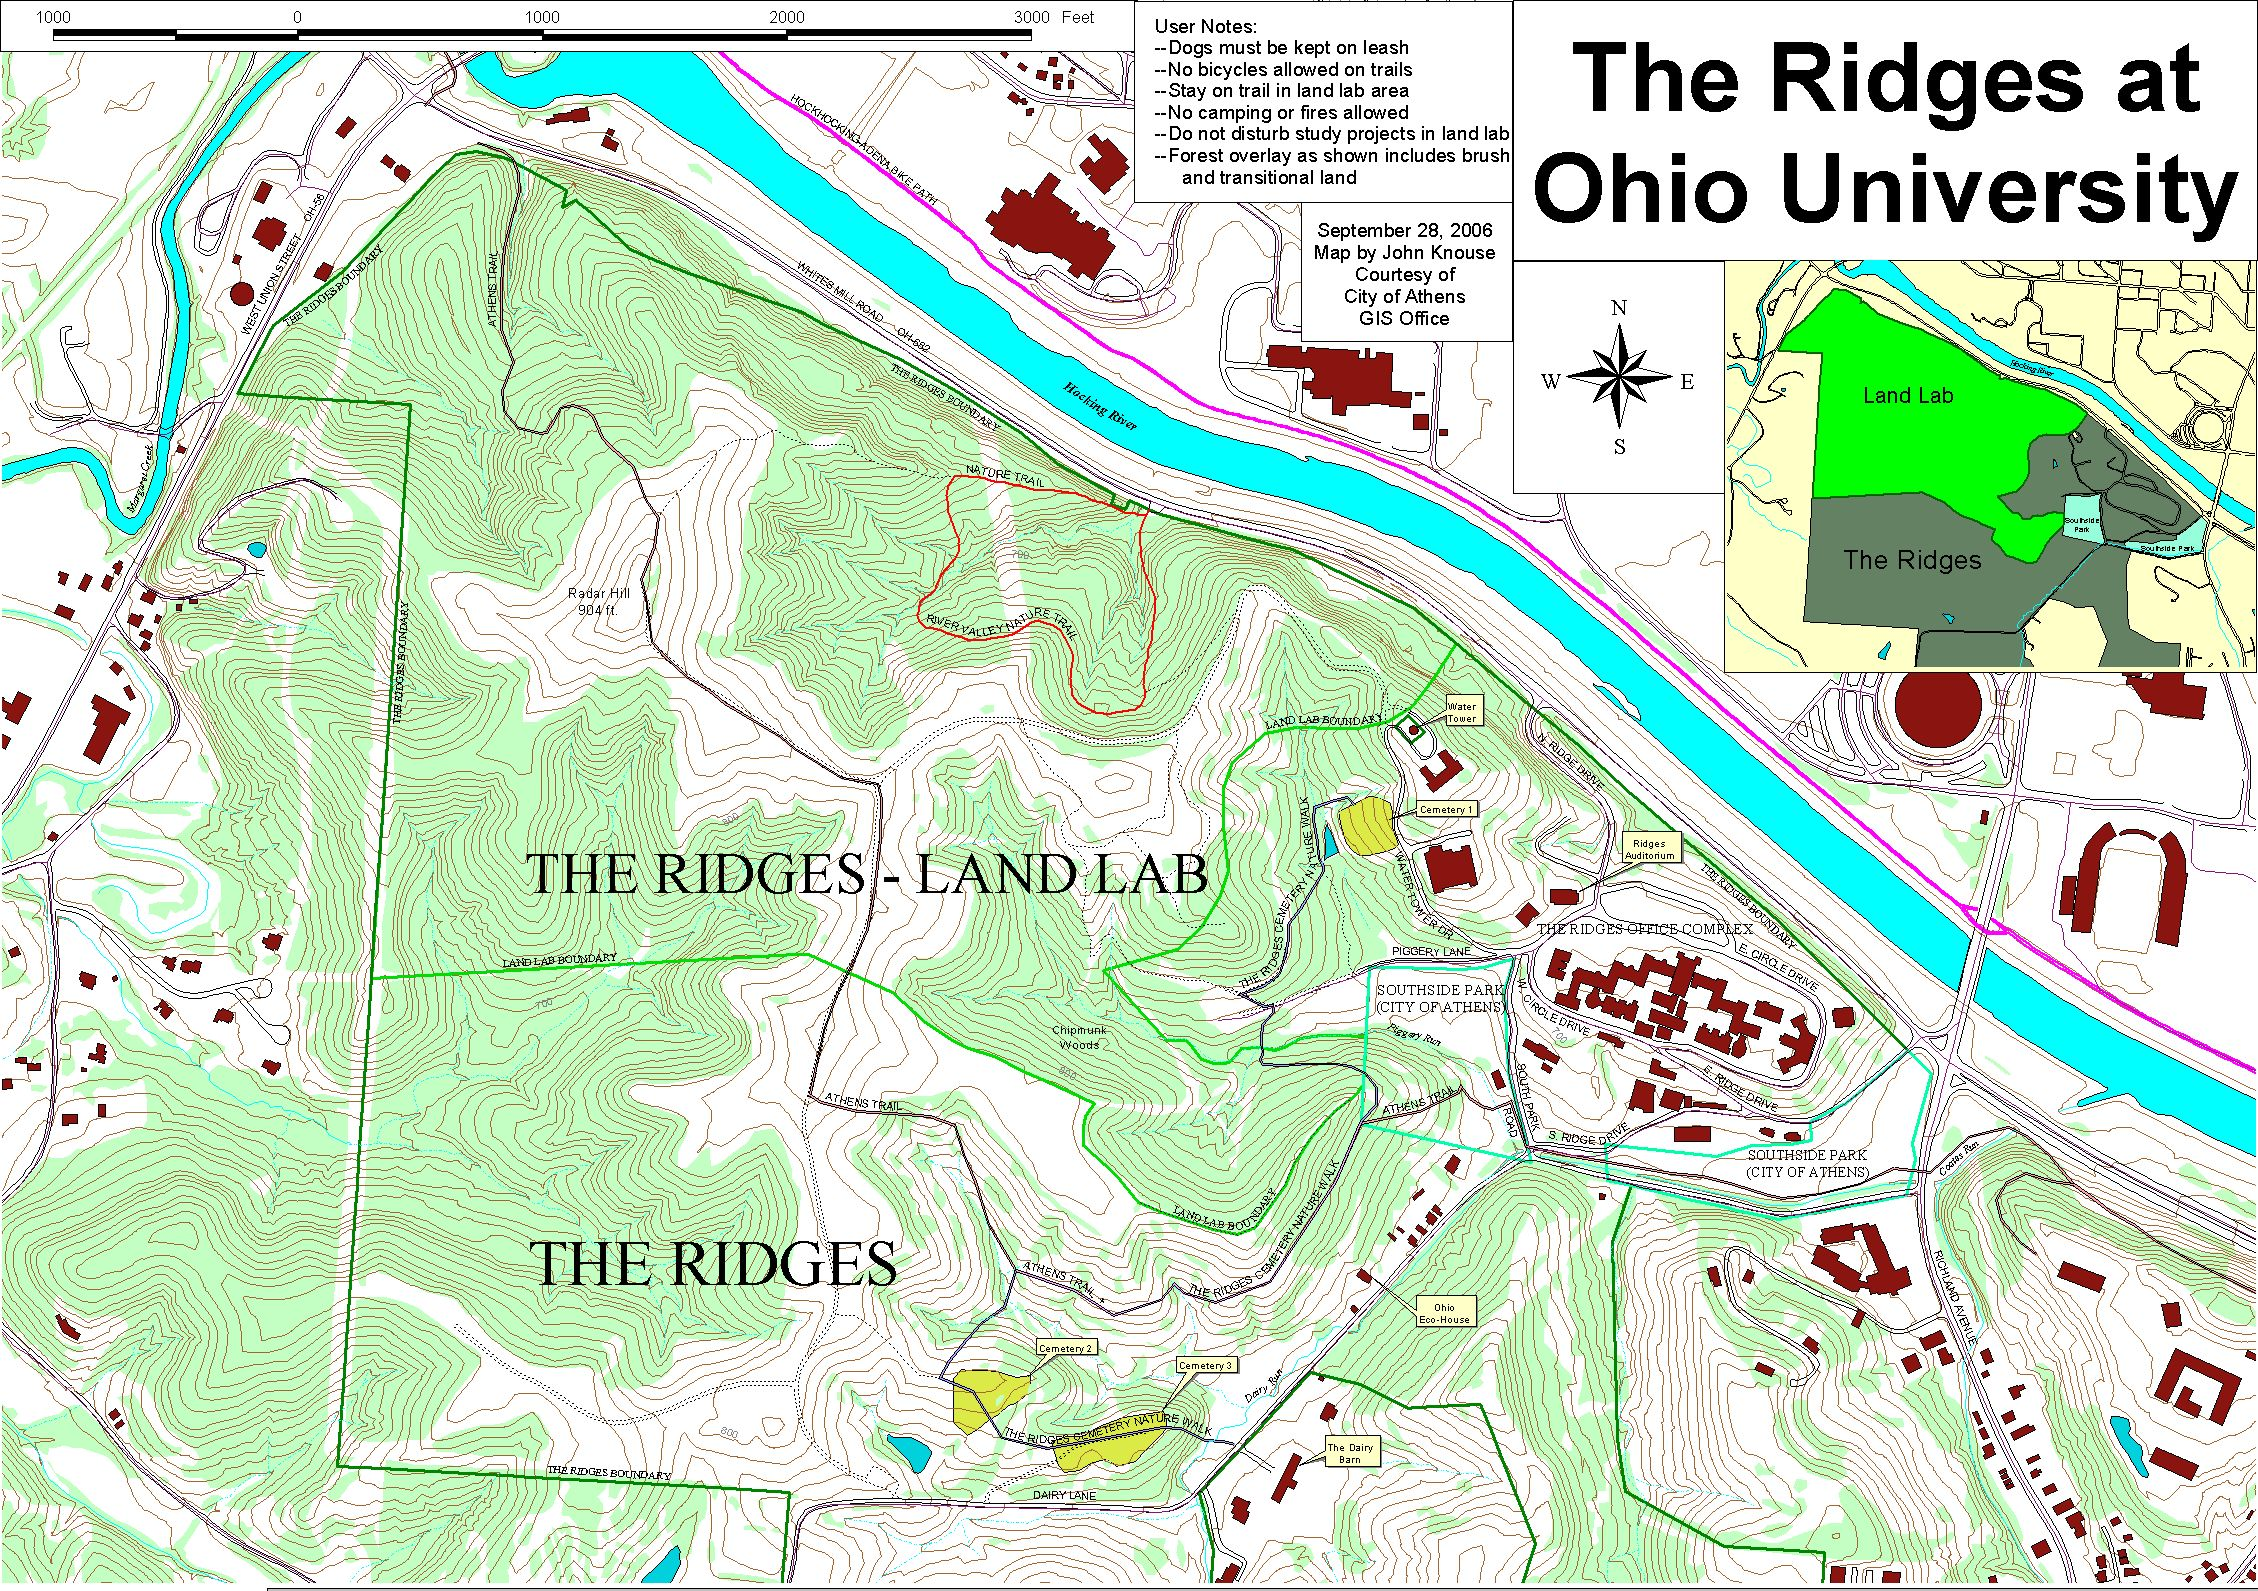 Athens Area Outdoor Recreation Guide The Ridges Ohio University - Driving map of ohio